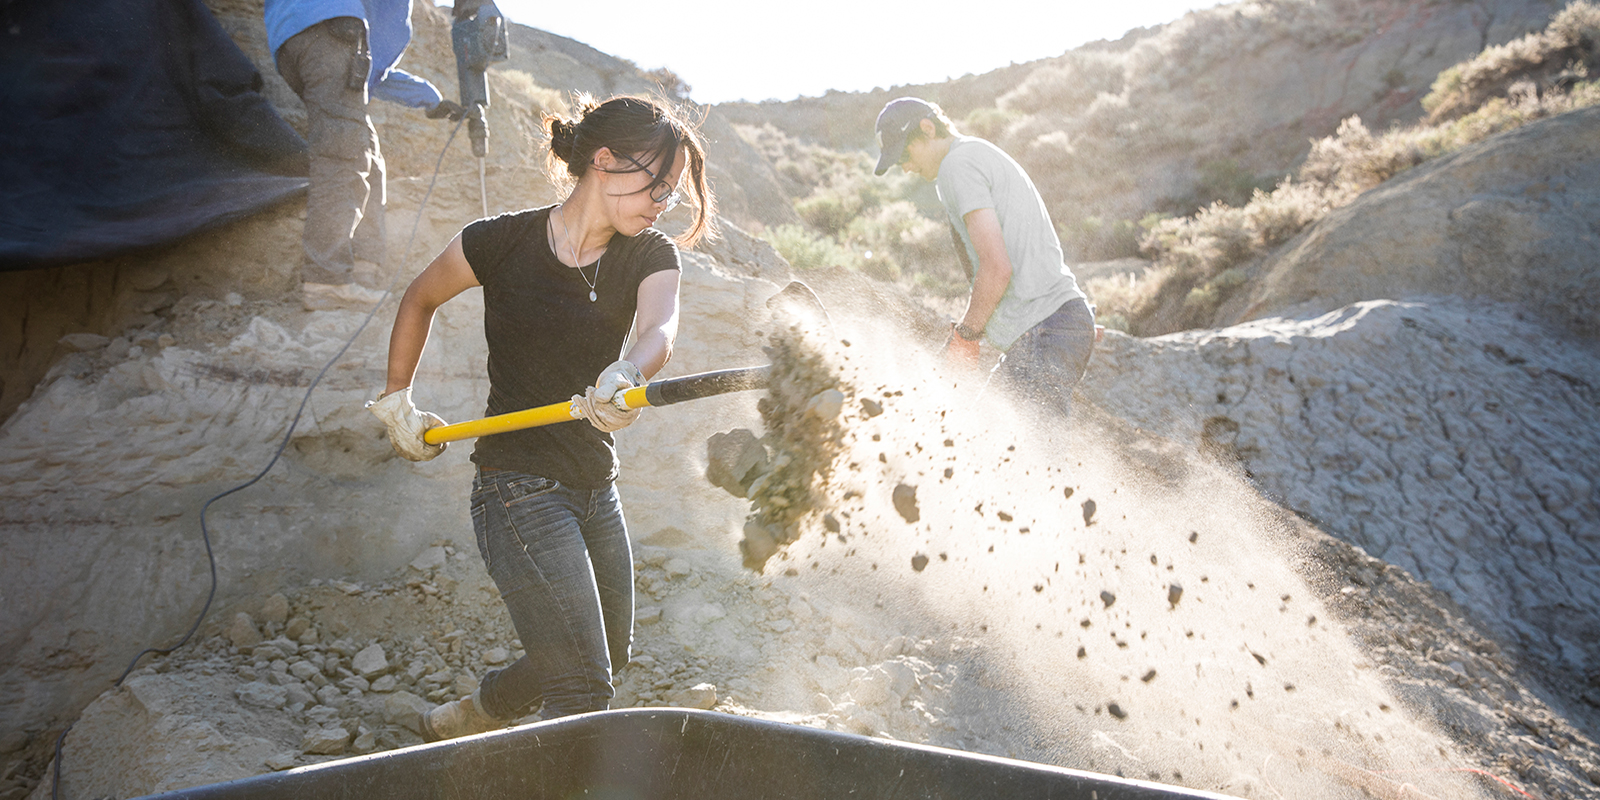 A woman shoveling dirt within a paleontology dig